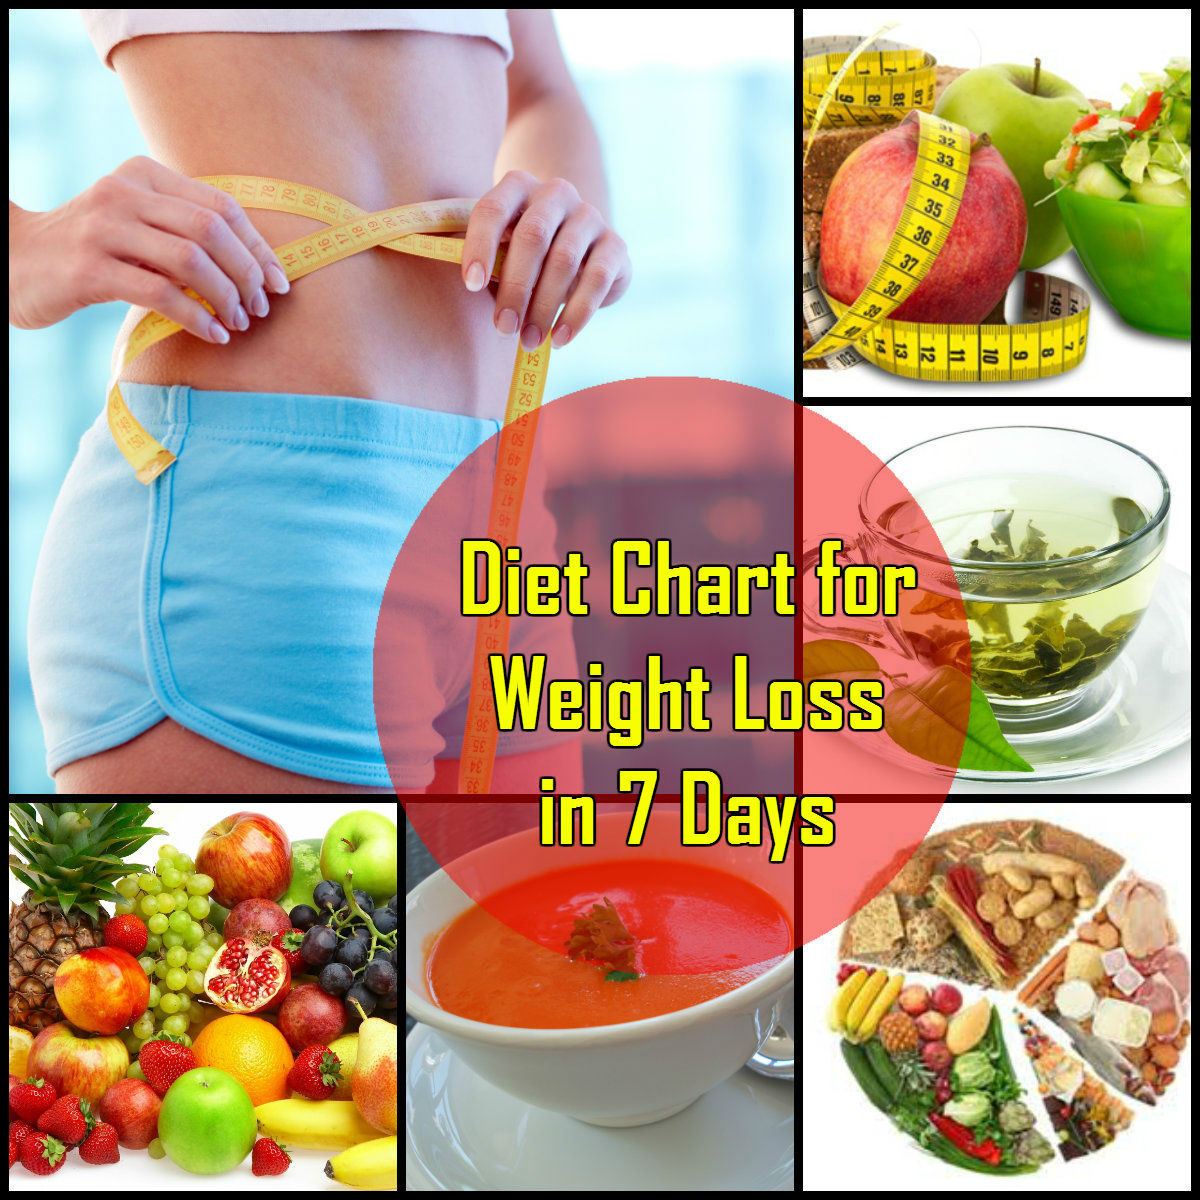 Diet chart for weight loss in hindi motapa kaam karne ke liye diet plan diet chart for weight loss in 7 days in hindi nvjuhfo Choice Image